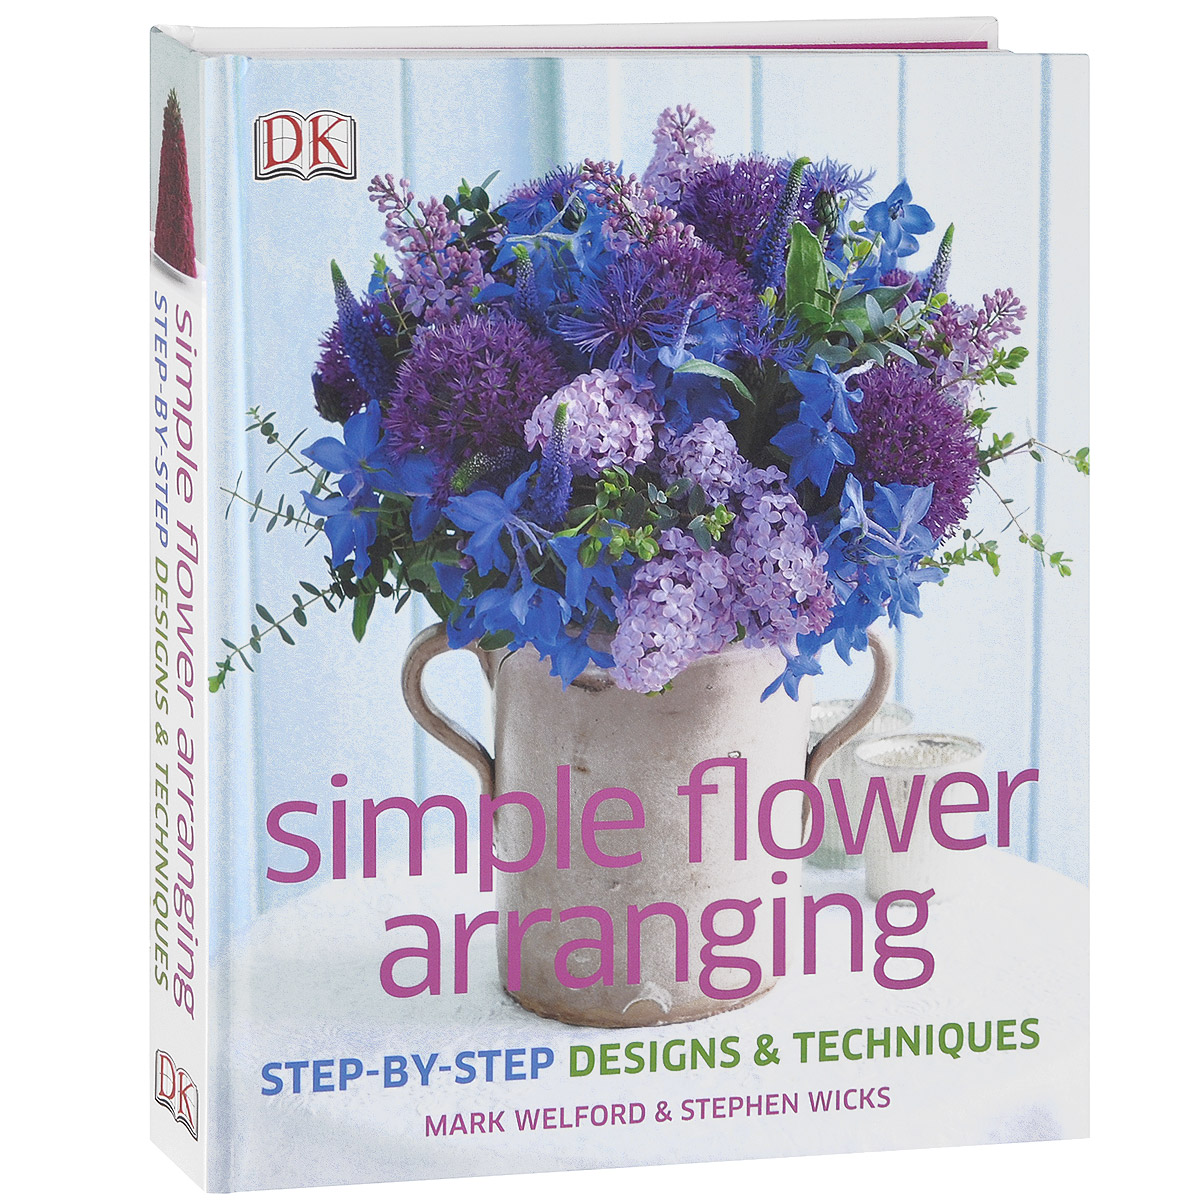 Simple Flower Arranging managing projects made simple